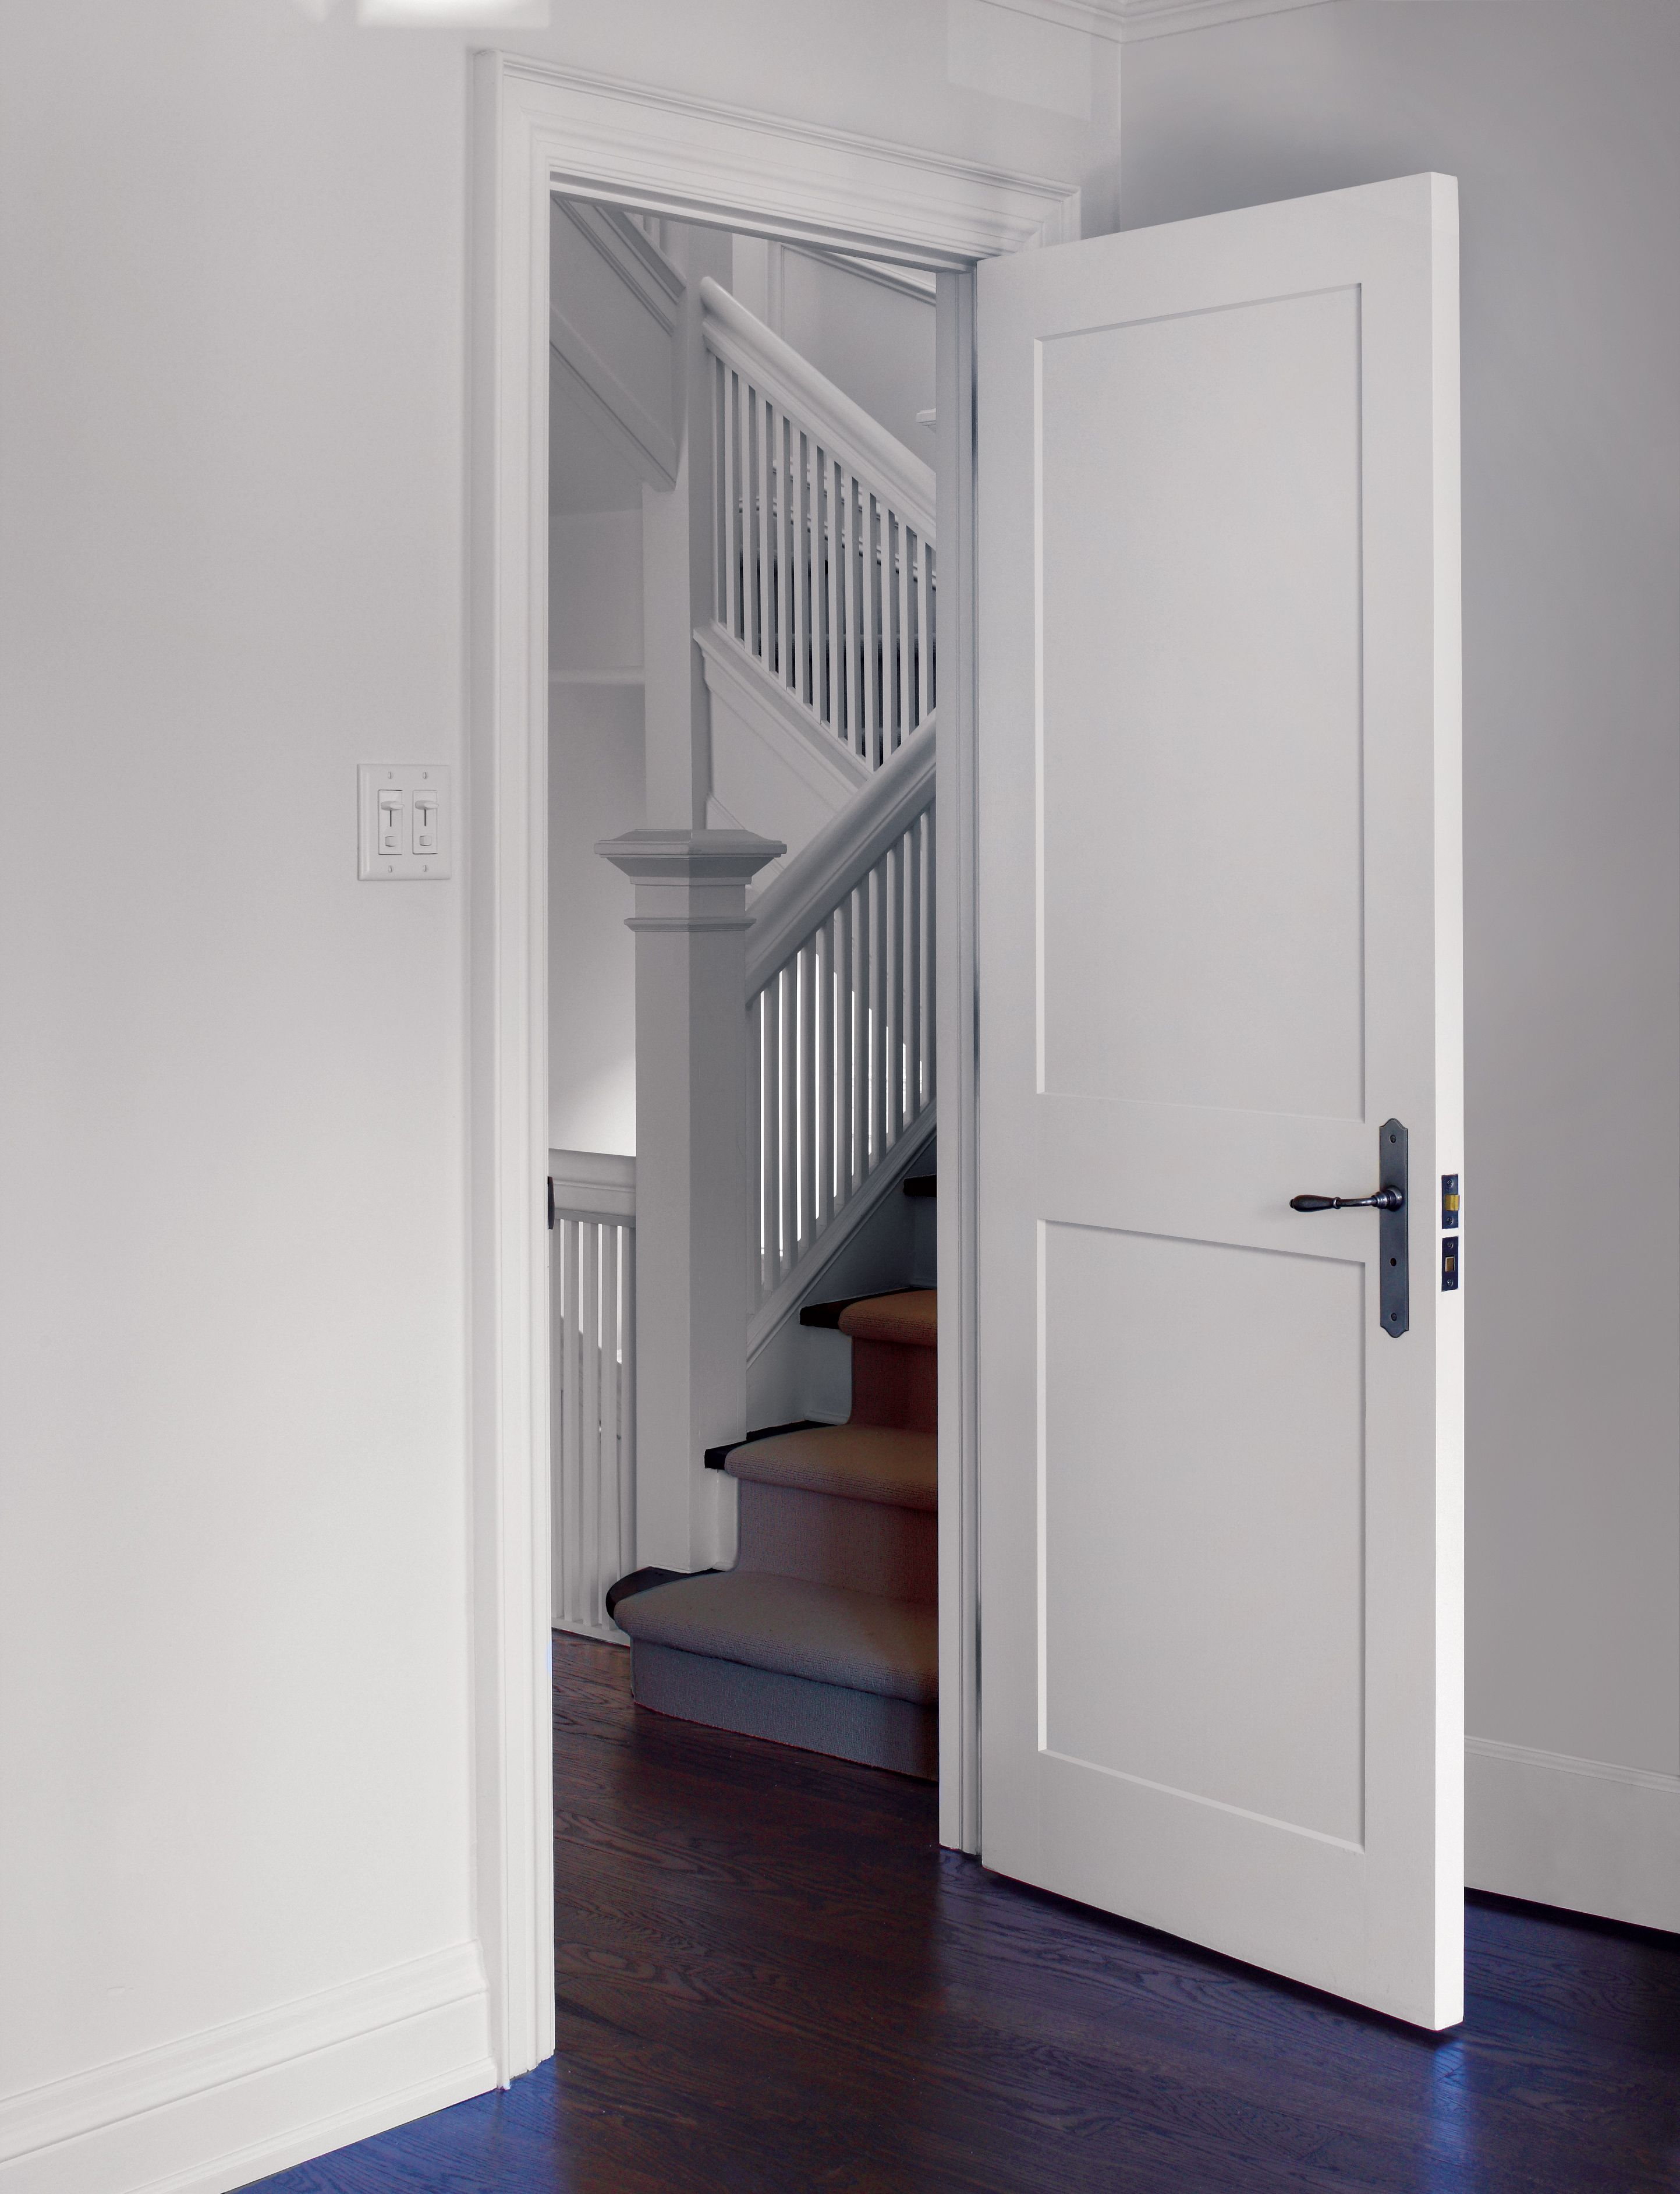 Interior 2 panel Shaker door | Shaker Doors | Pinterest ...